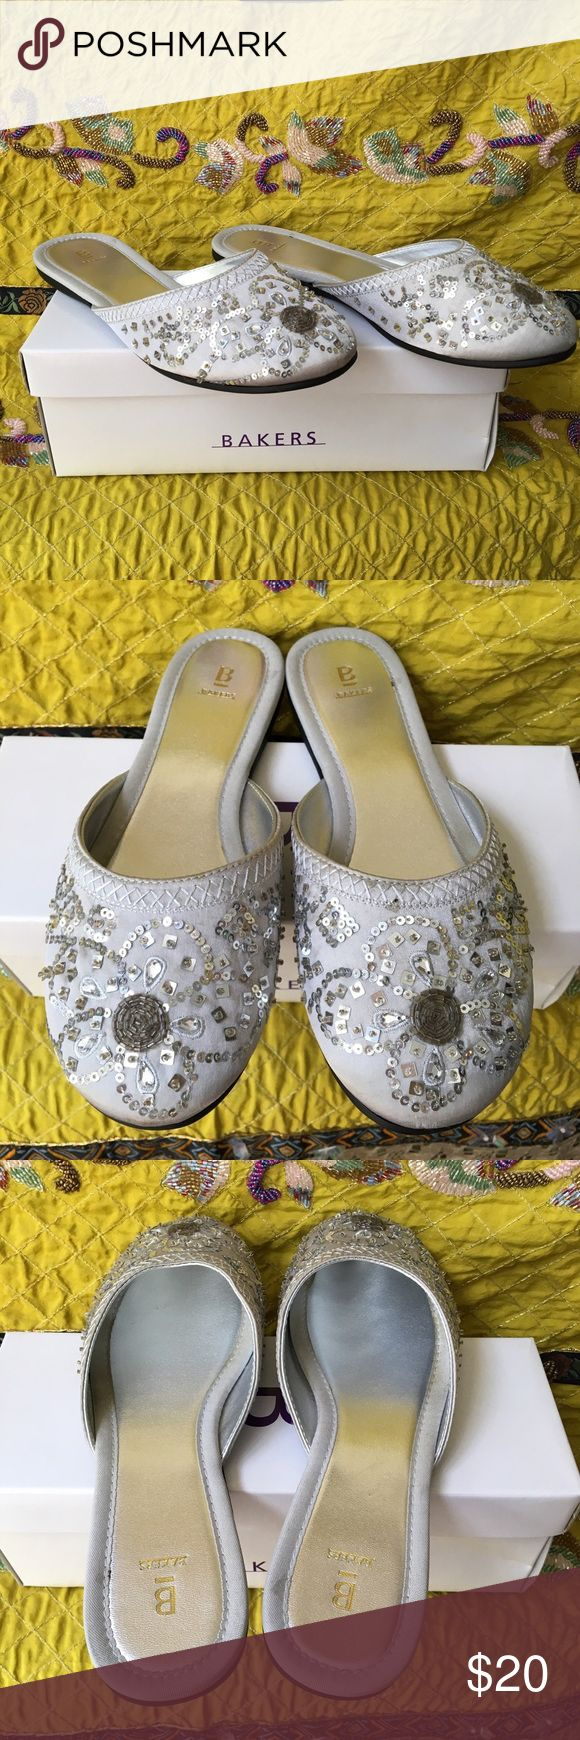 💥NWT Embelished Silver Slipper Style Shoes💥 Never been worn and in original box! Bakers silver slipper style shoes with sequin and beaded embellishments. Bakers Shoes Slippers